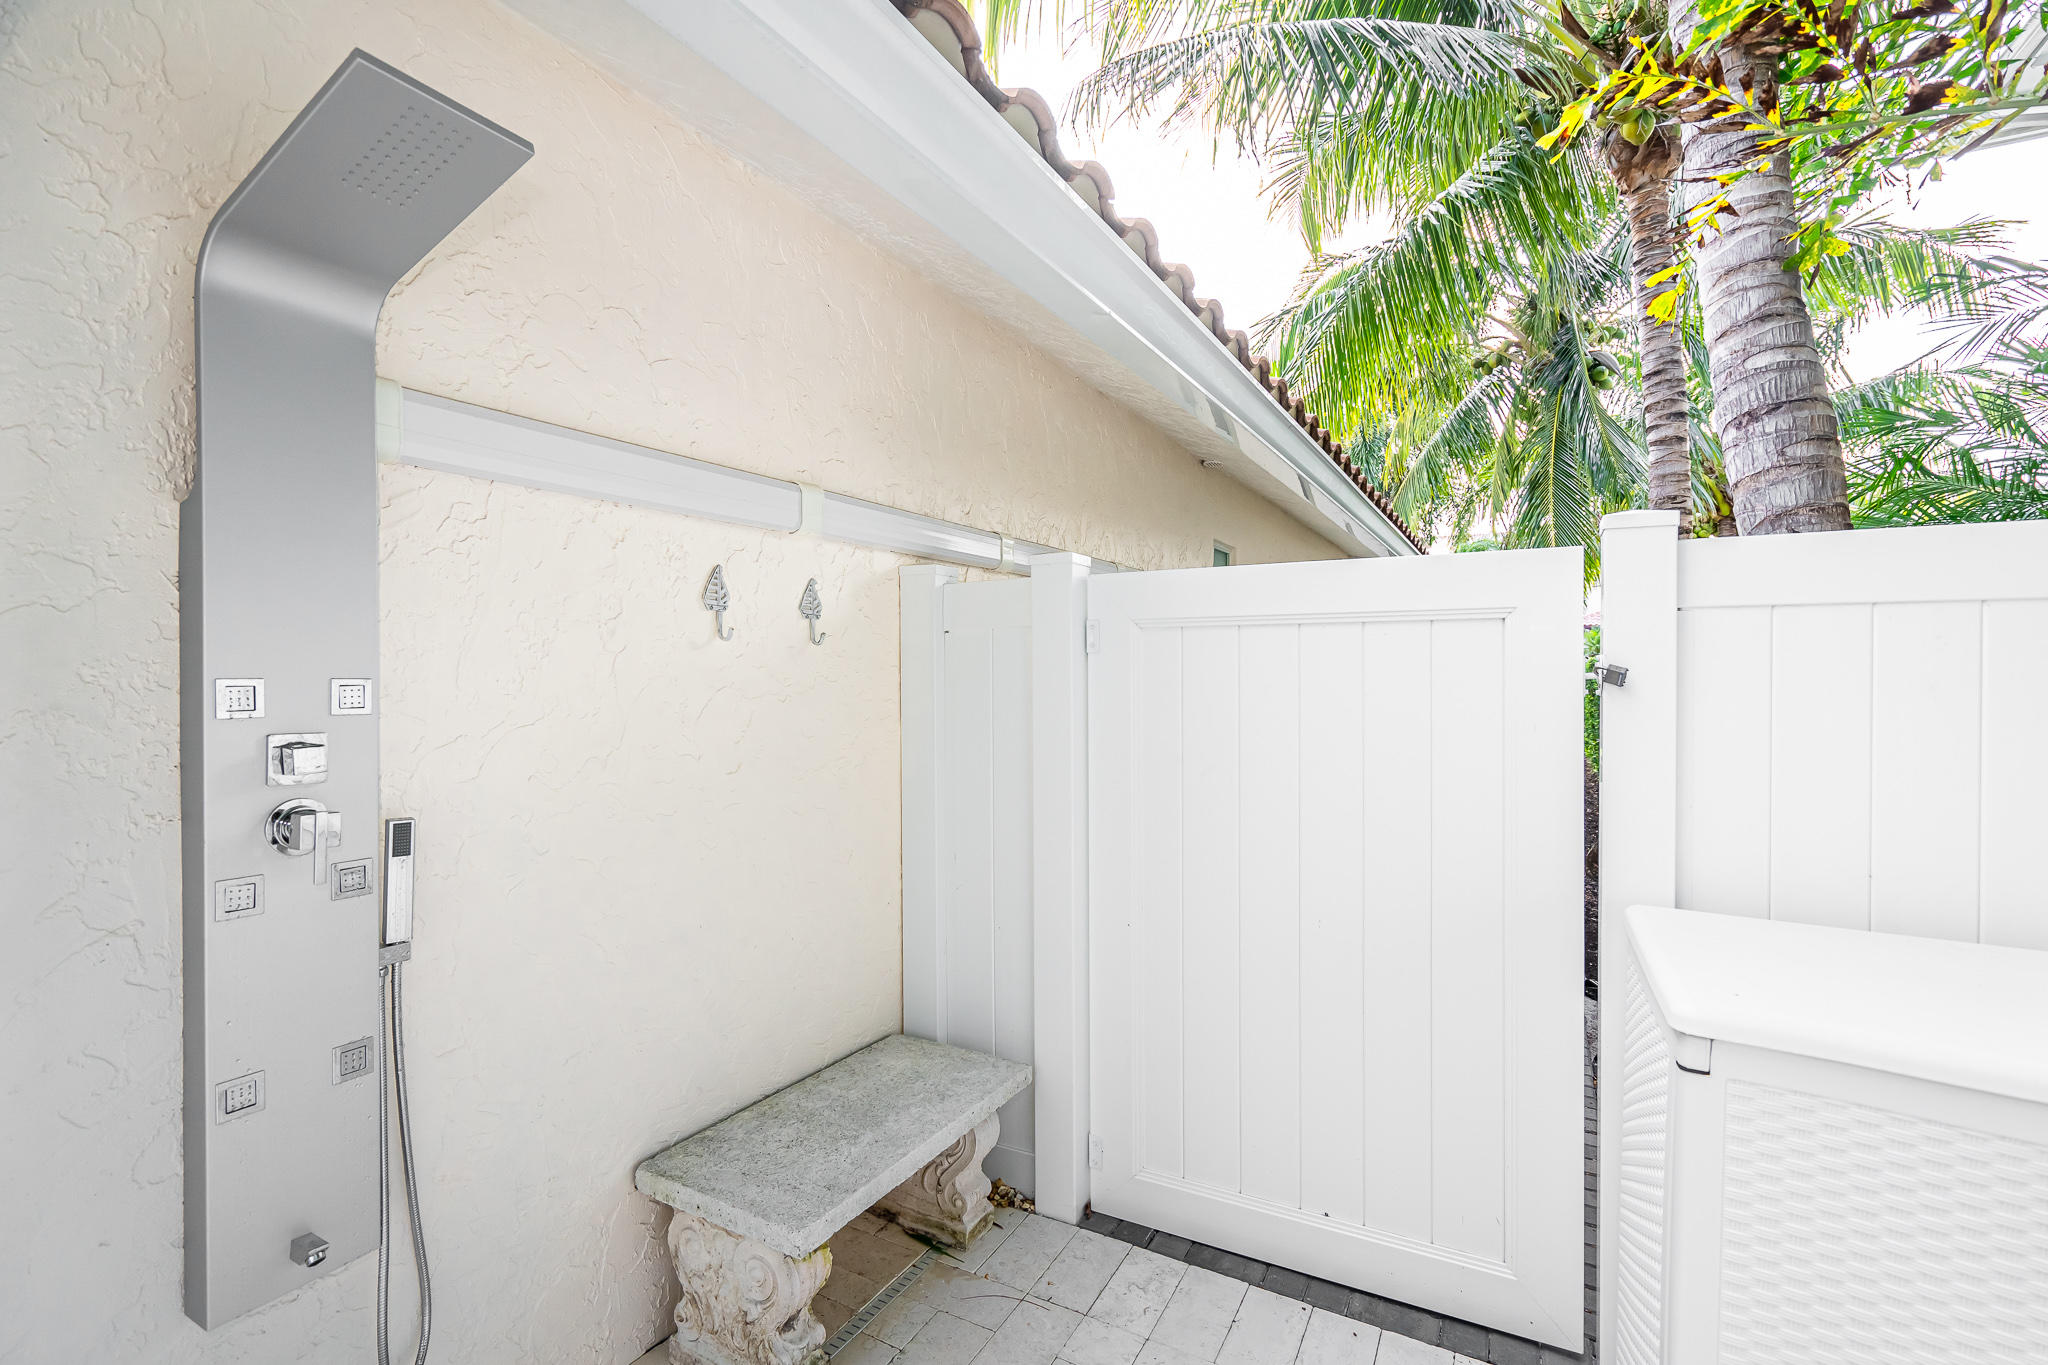 New Outdoor Pool Shower